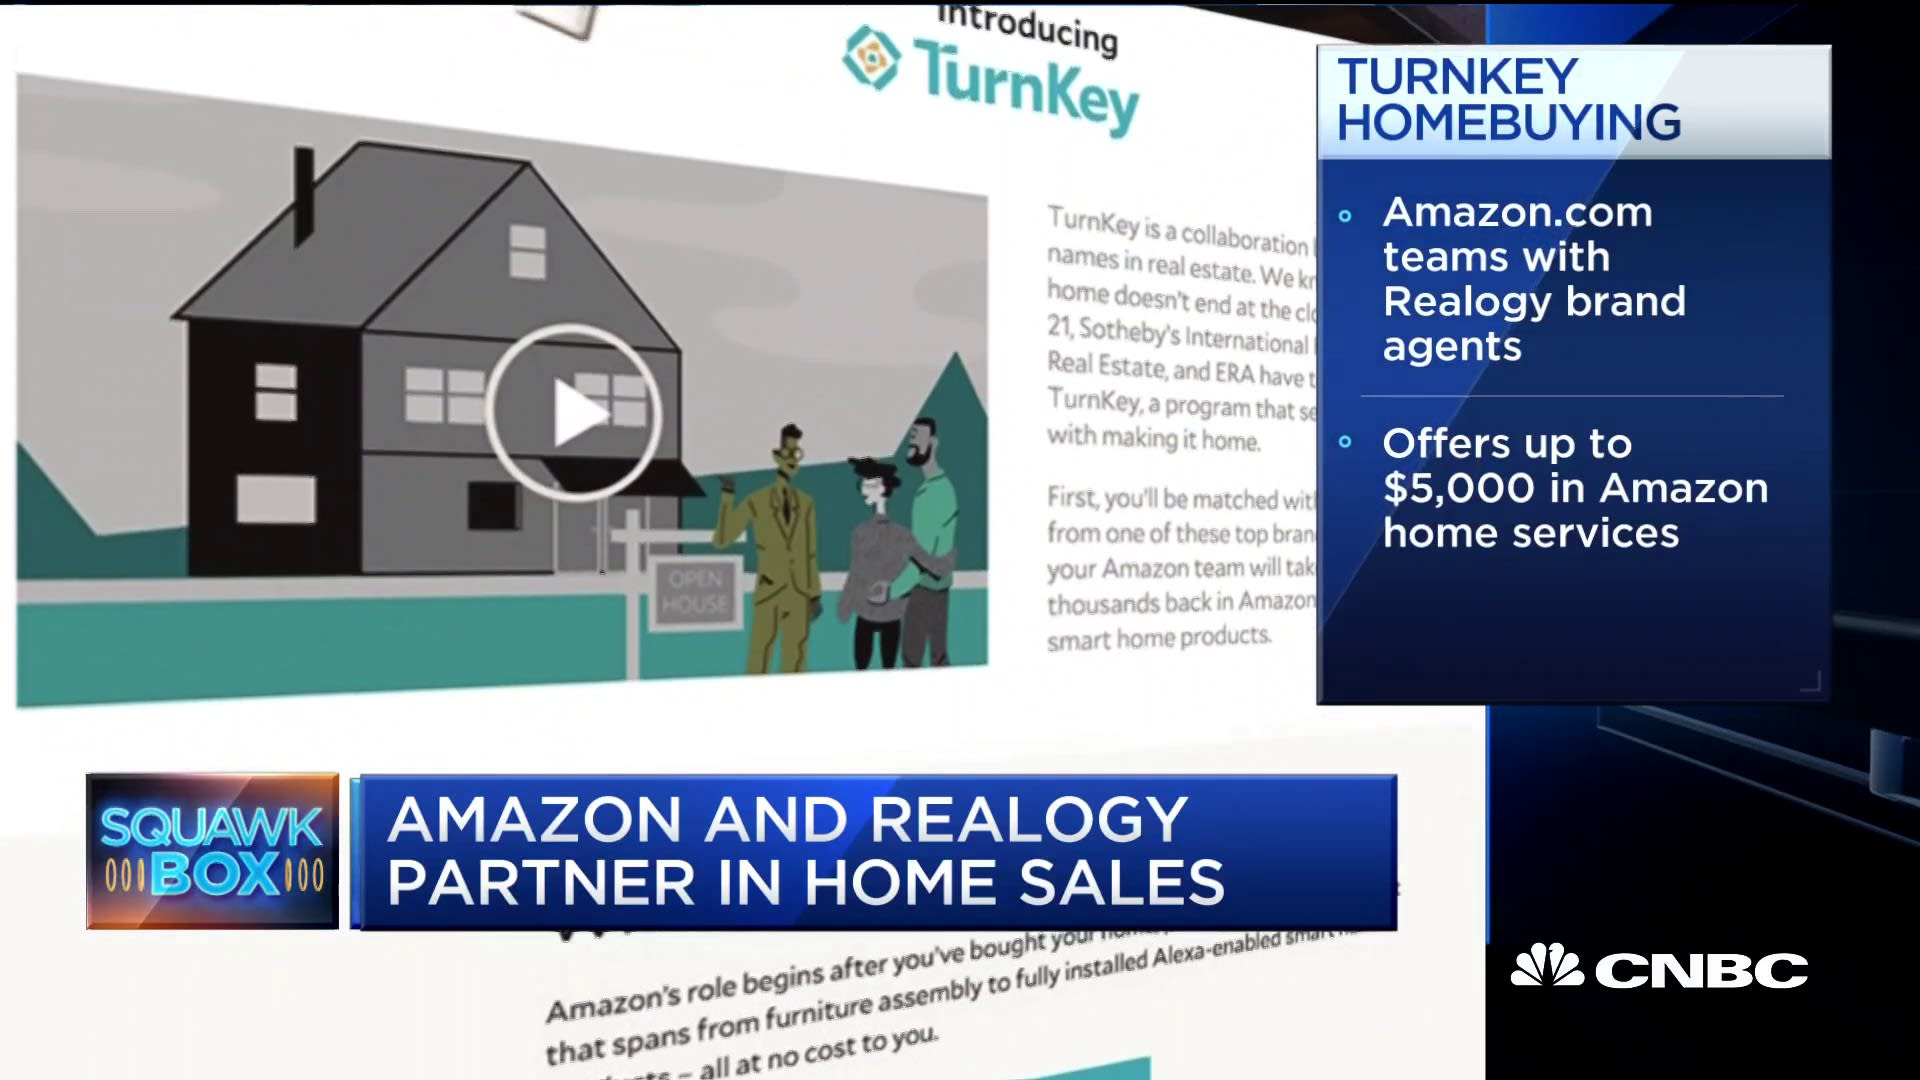 Amazon and Realogy partner in home sales